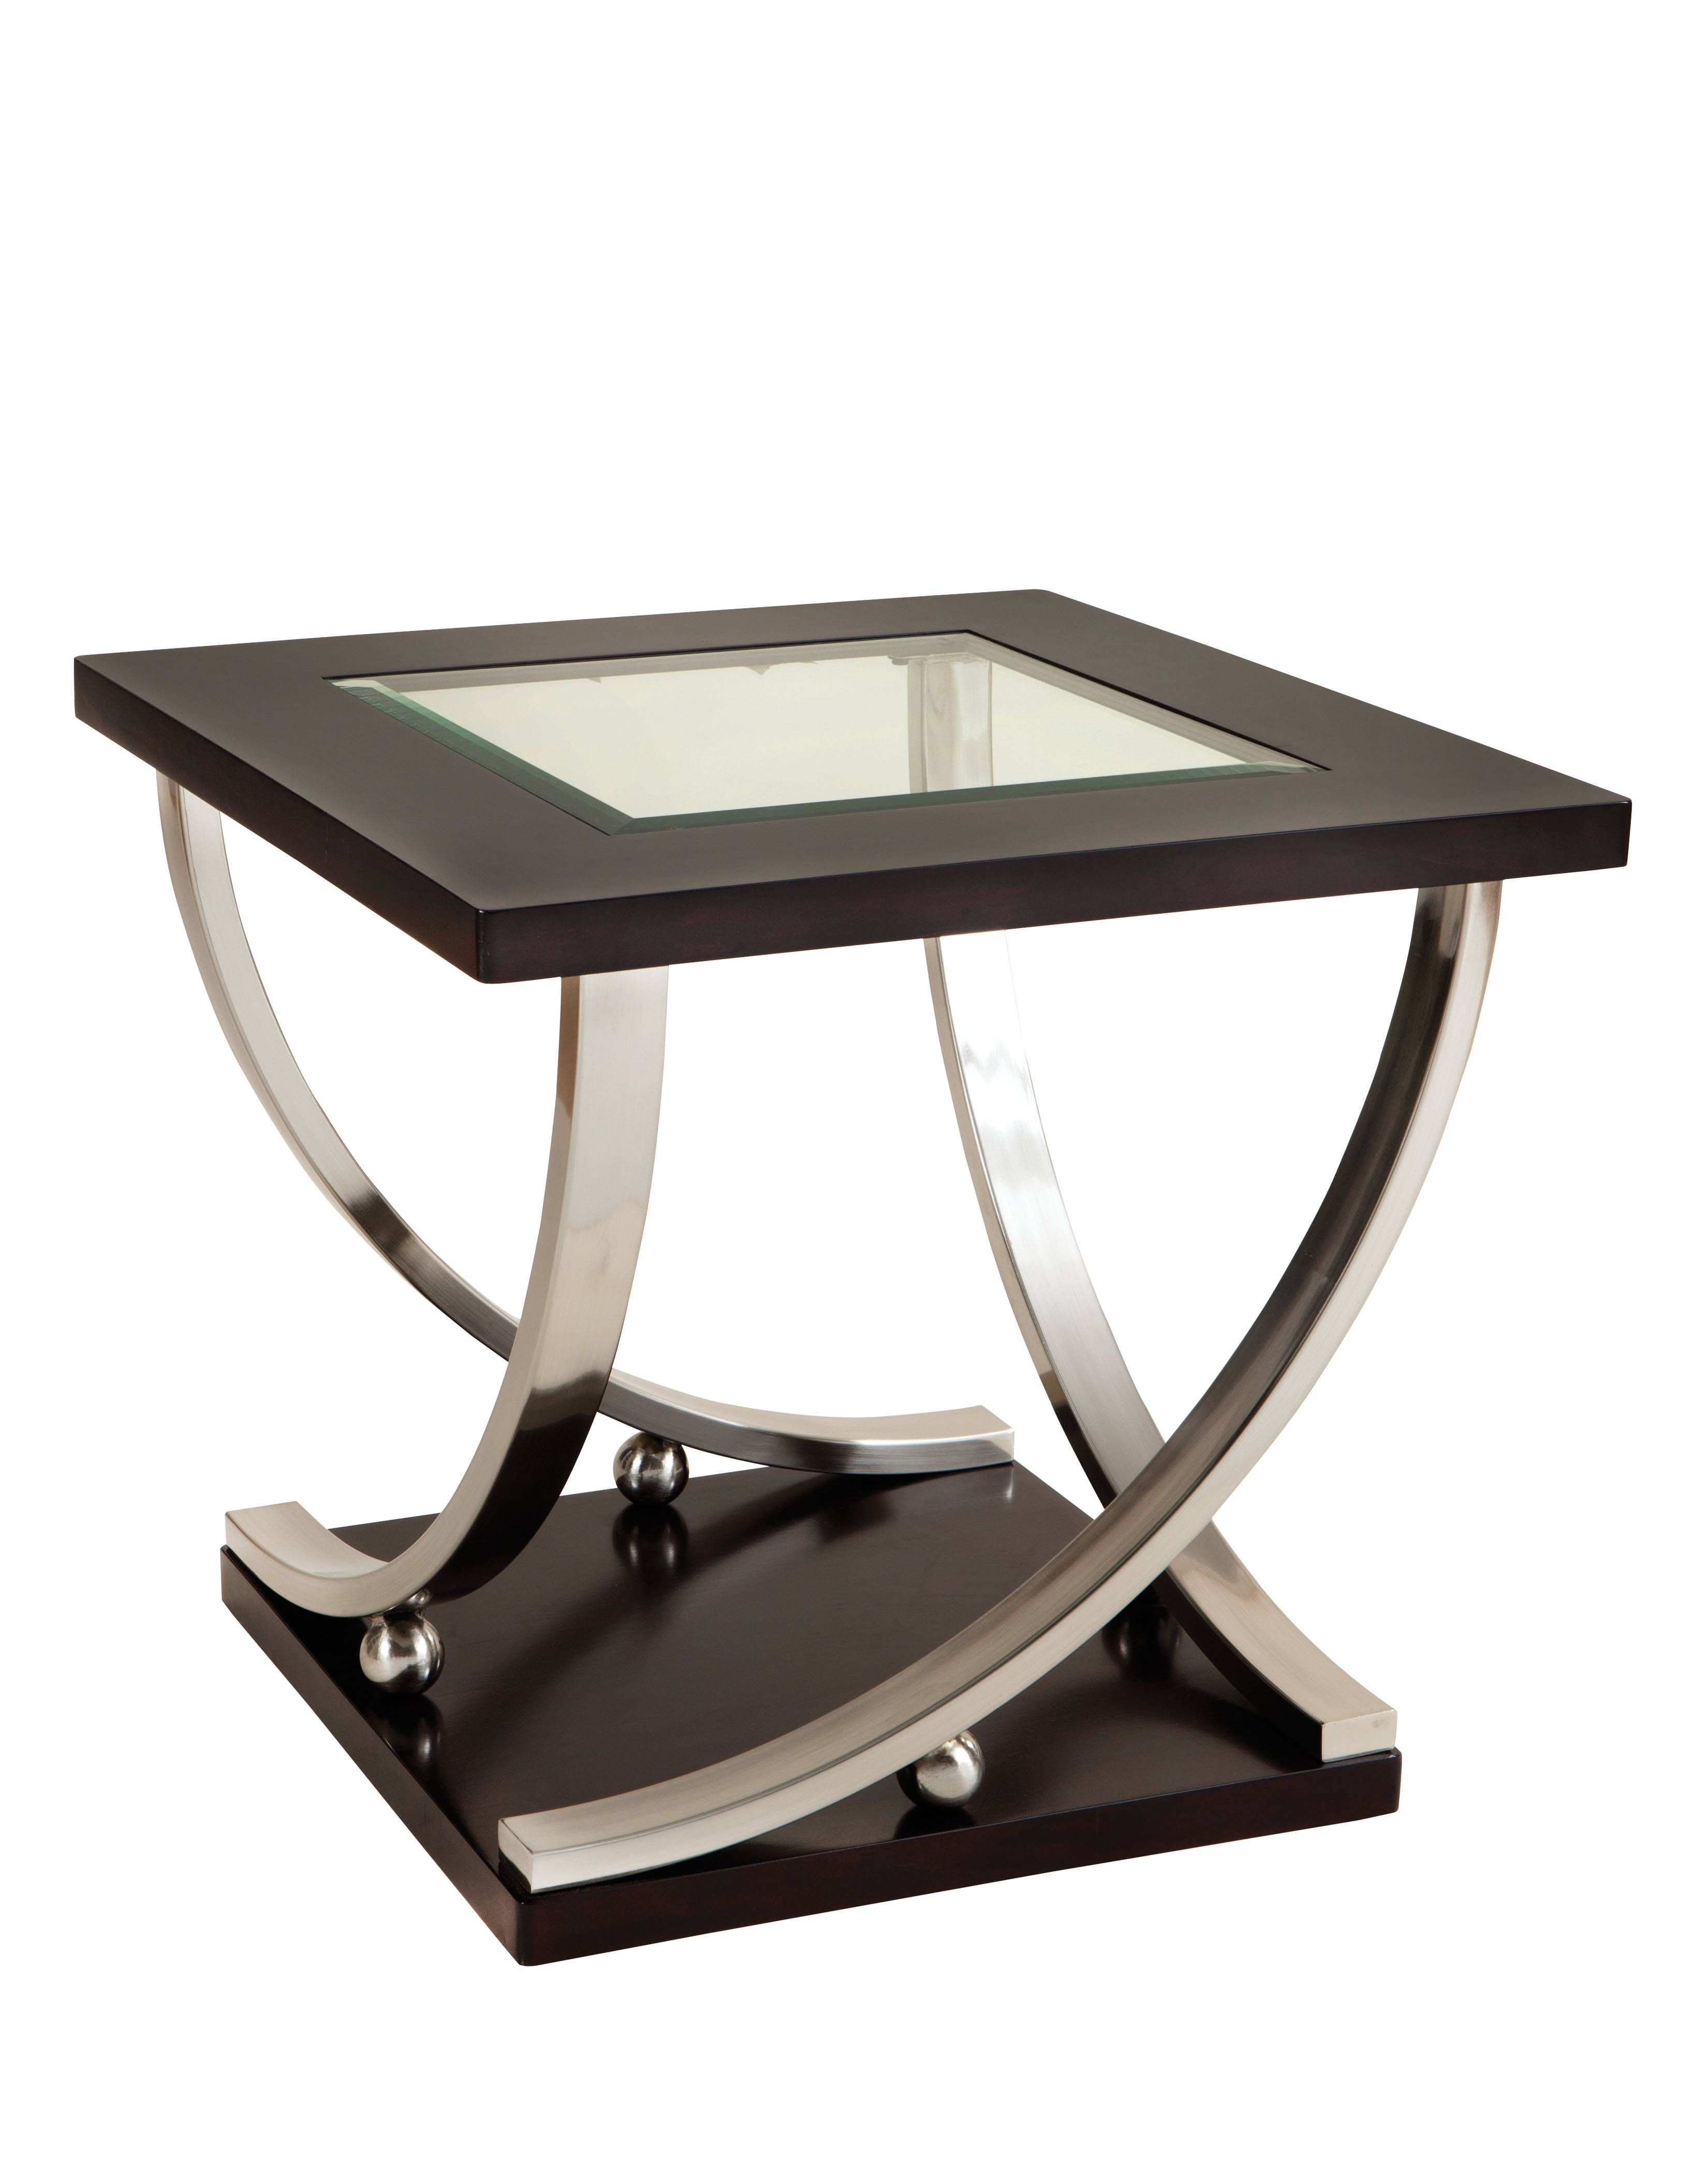 standard furniture melrose glass end table modern tables dark merlot wood metal the pipe mainstays storage cabinet instructions decorating ideas living room brown couch